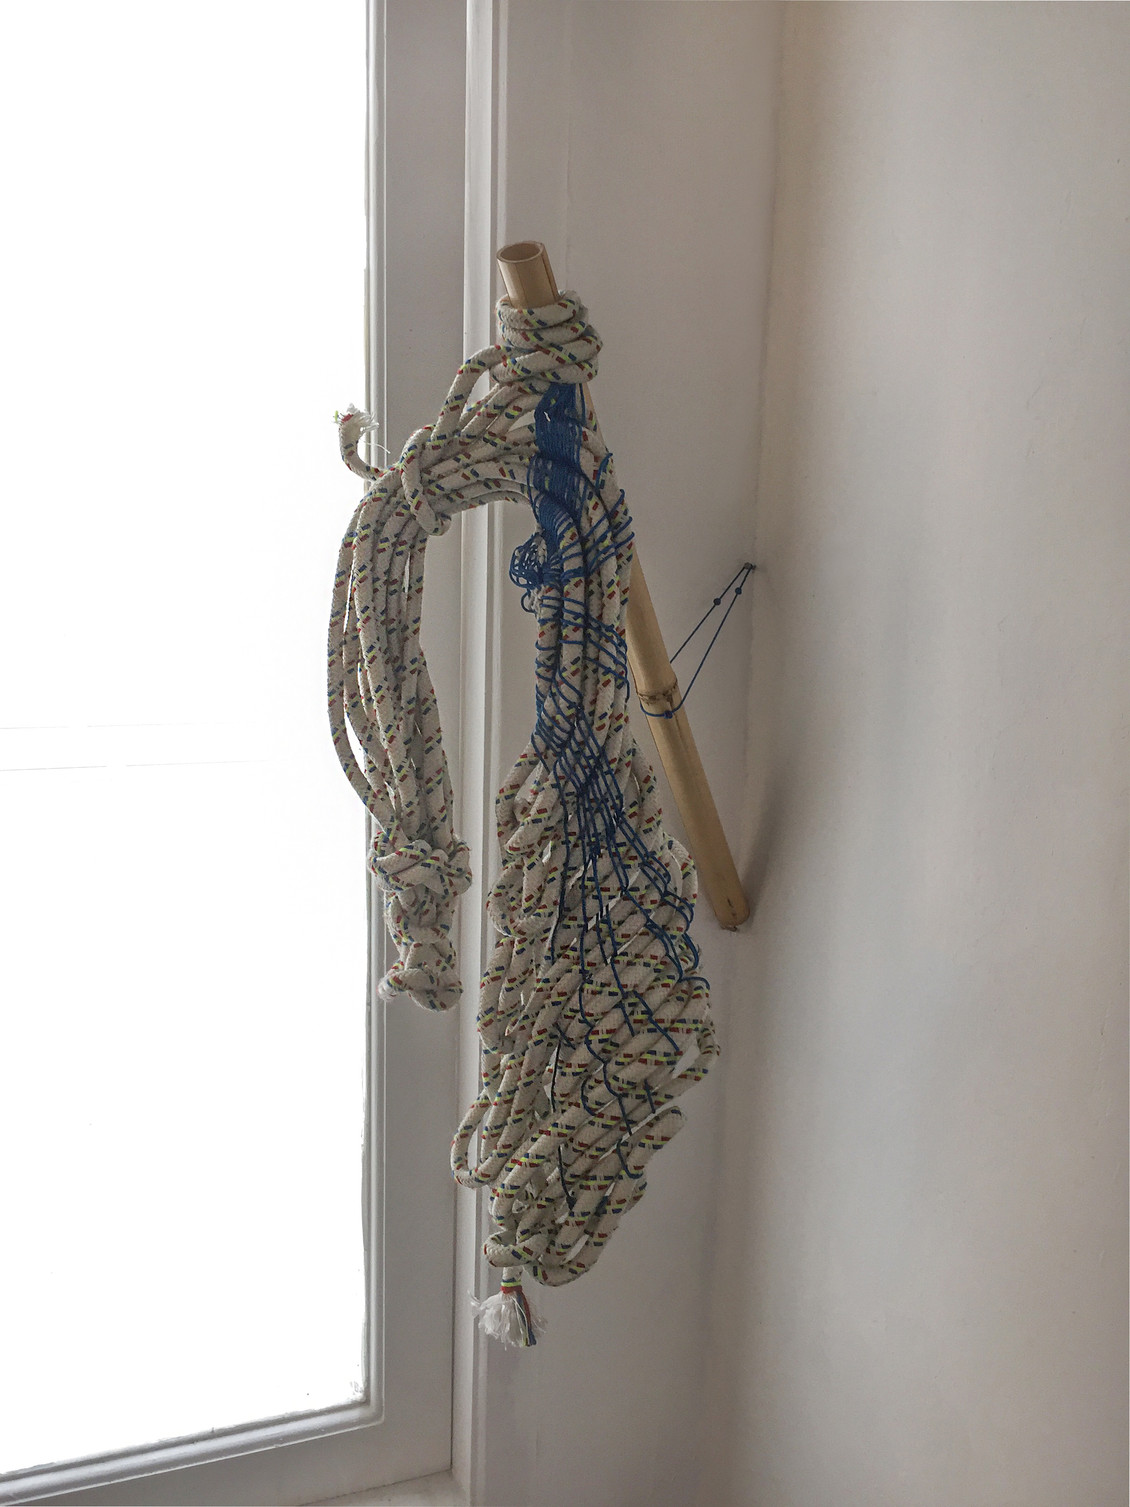 Swan, 2016 | Tapestry and Bamboo | 77 x 33 x 45 cm